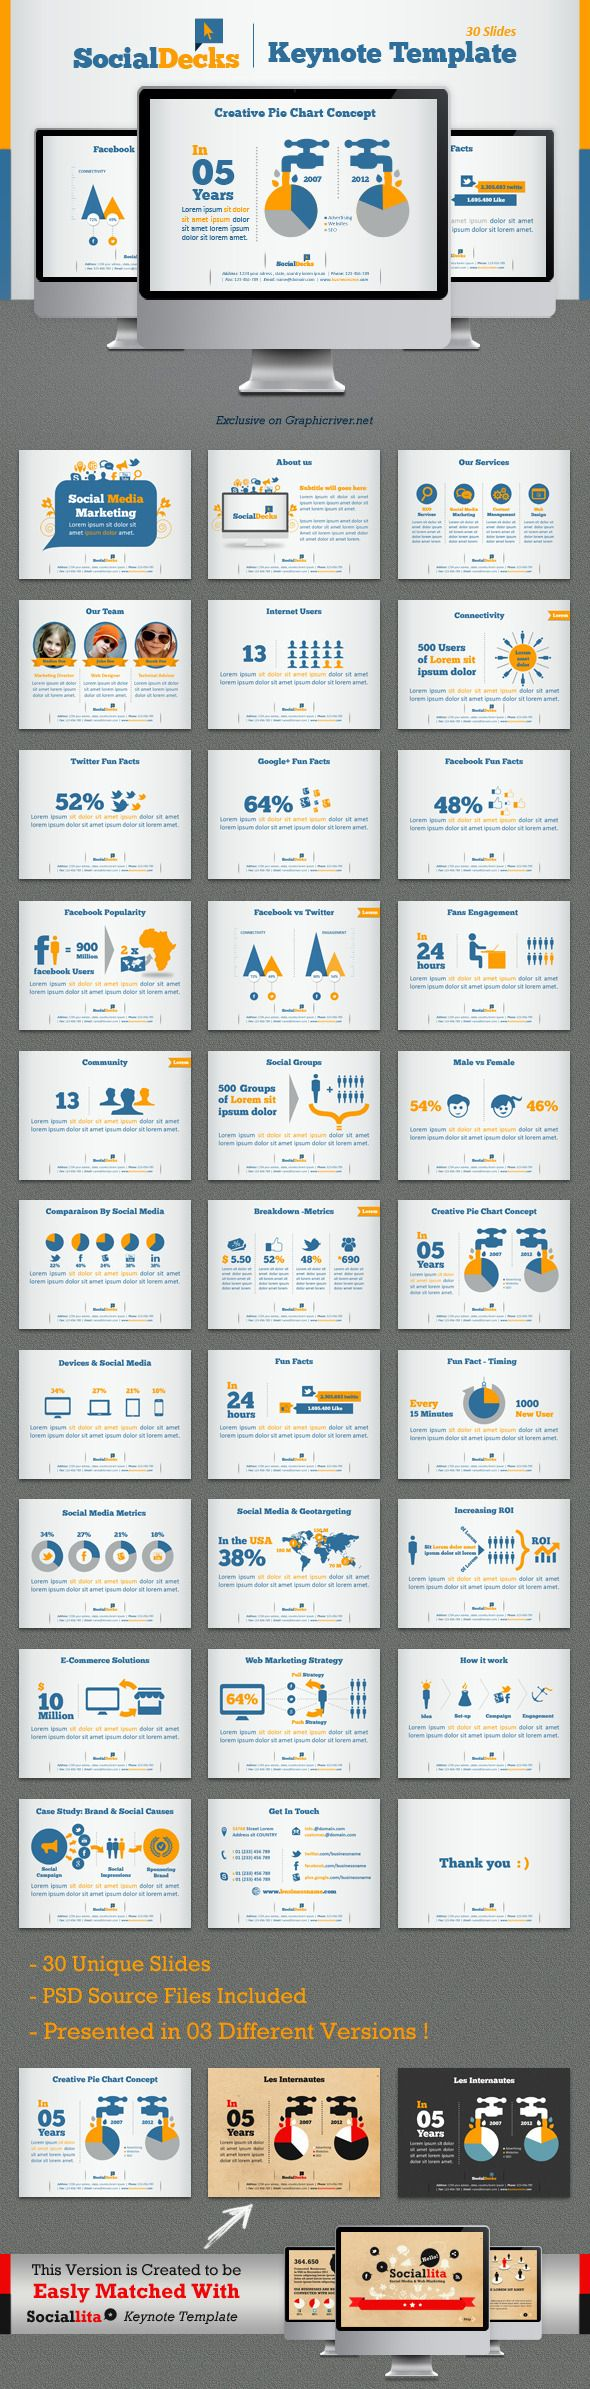 SocialDecks Keynote Template #keynote #keynotetemplate Download: http://graphicriver.net/item/socialdecks-keynote-template/4456737?ref=ksioks